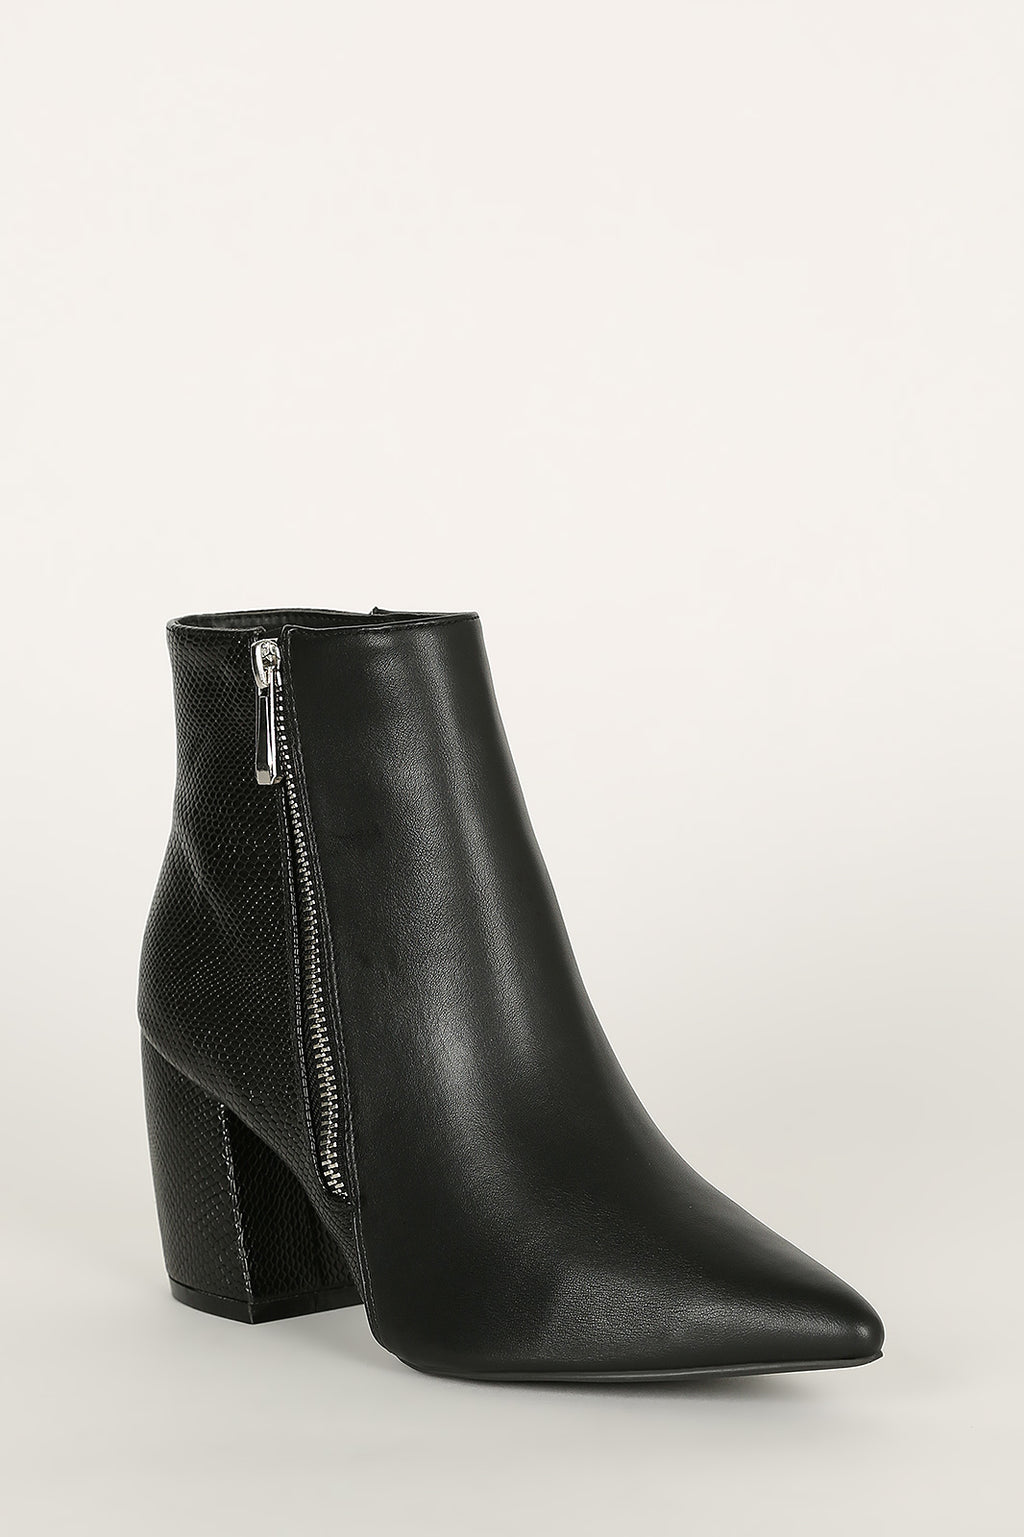 Bad Behavior - Black Pointed Toe Booties